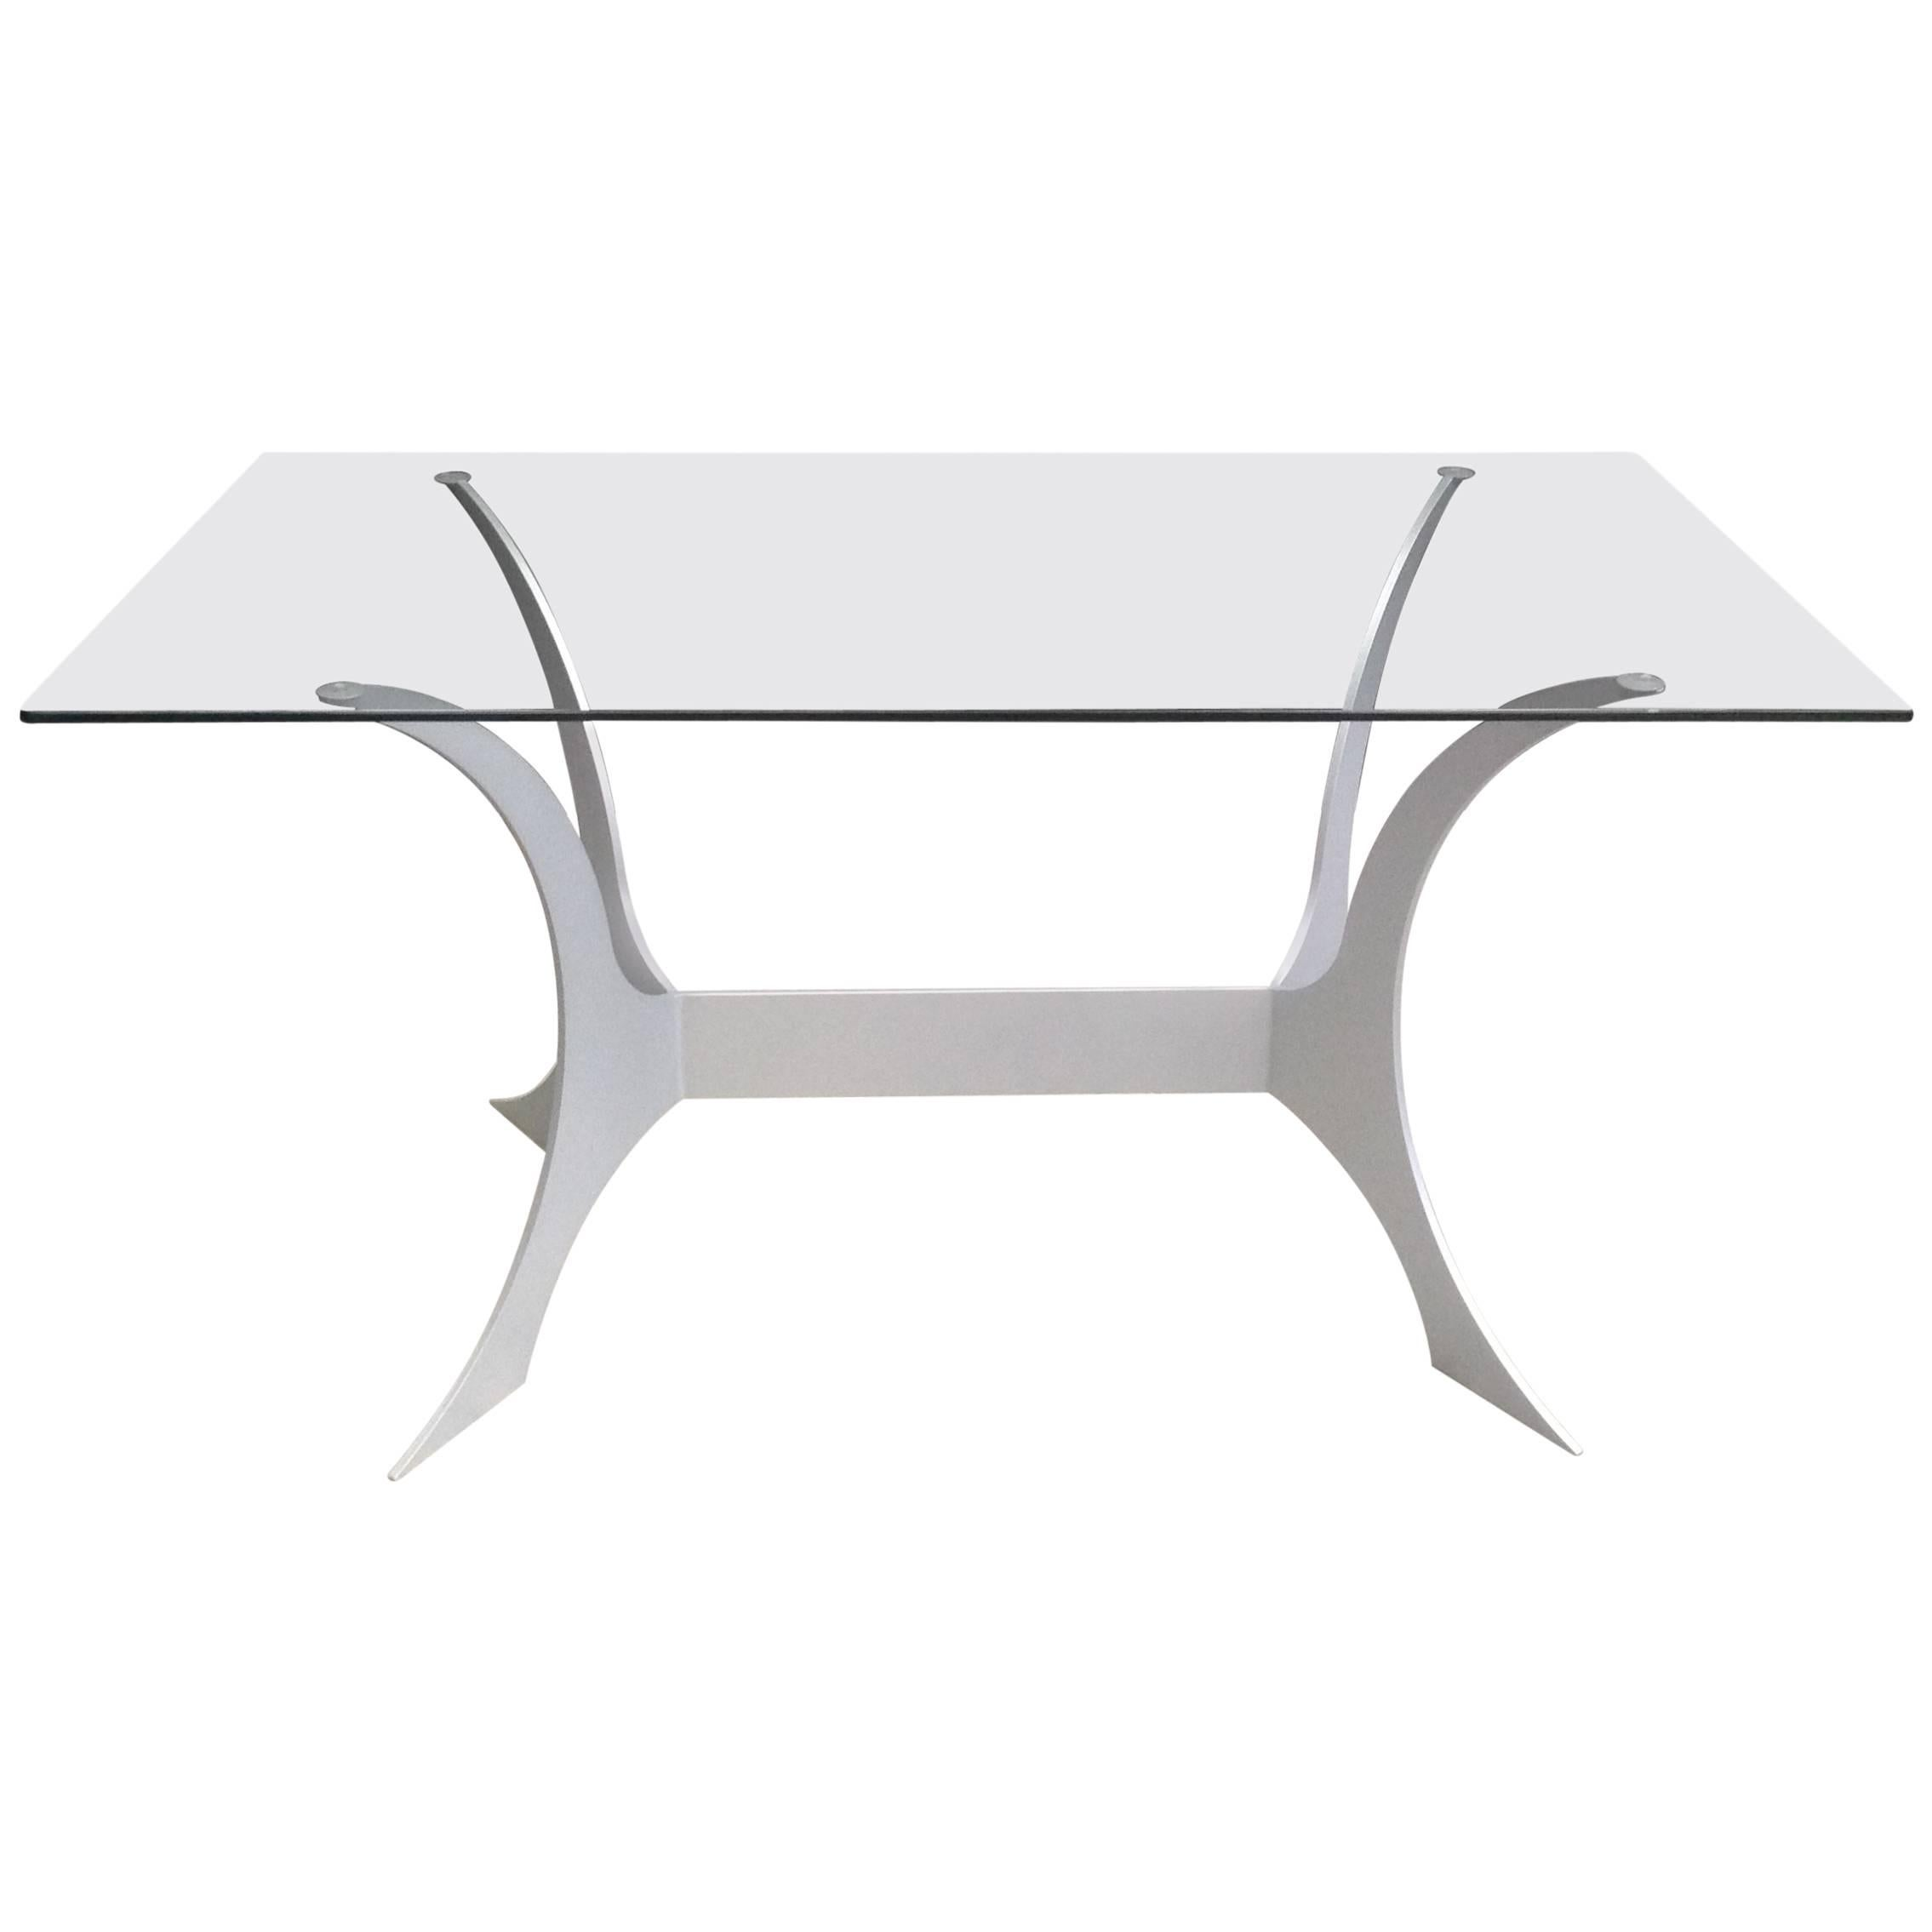 Grey Table in Wrought Iron, Glass Top, Patio Table, Patio Set, Outdoor Furniture